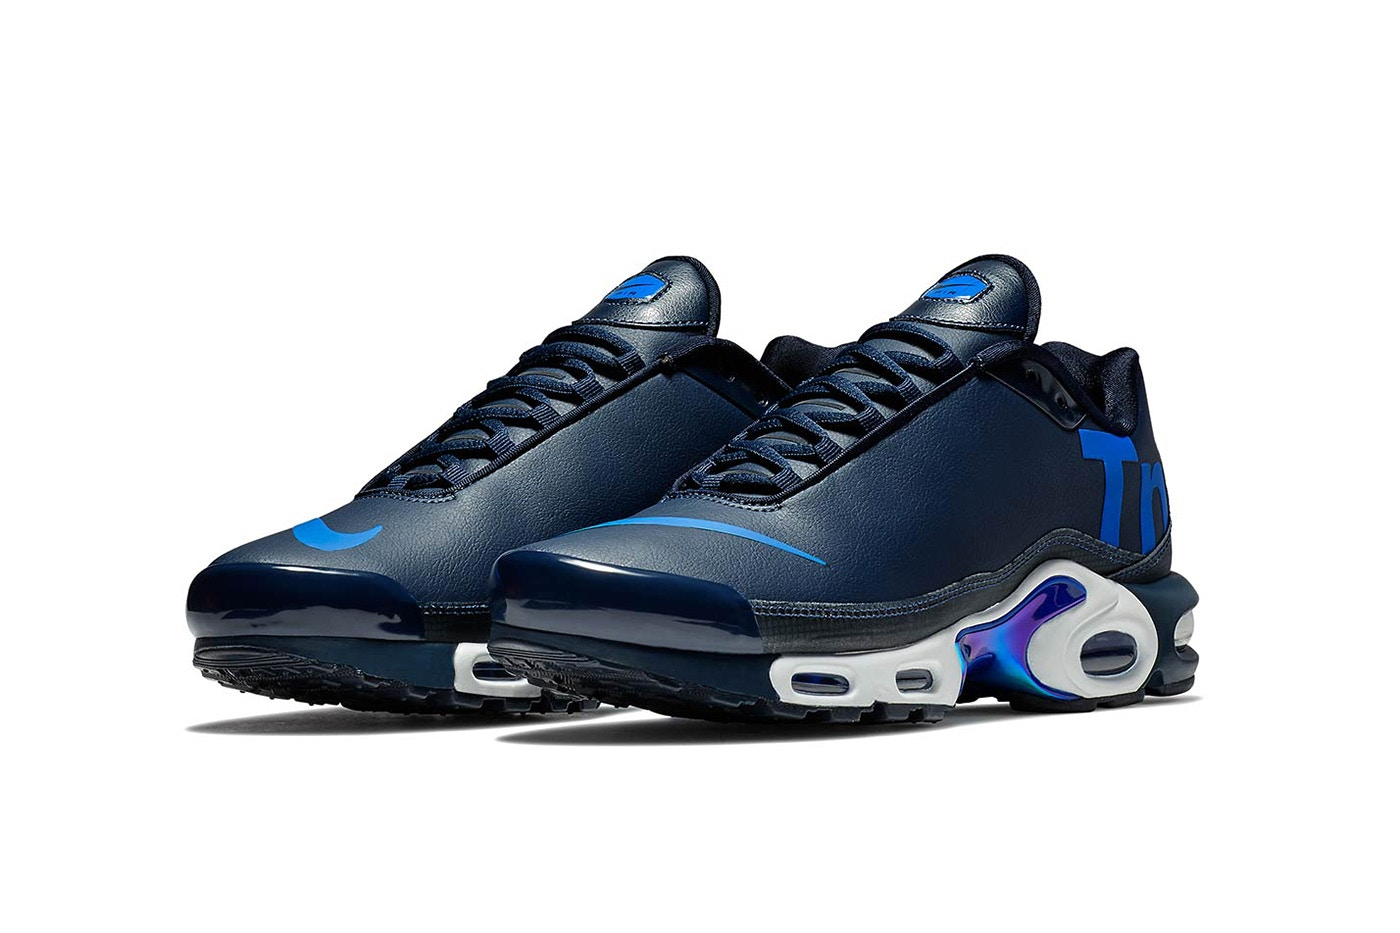 sports shoes ba7cc baddc Tuned Air Gets a Remix with the Nike Mercurial TN in Navy ...